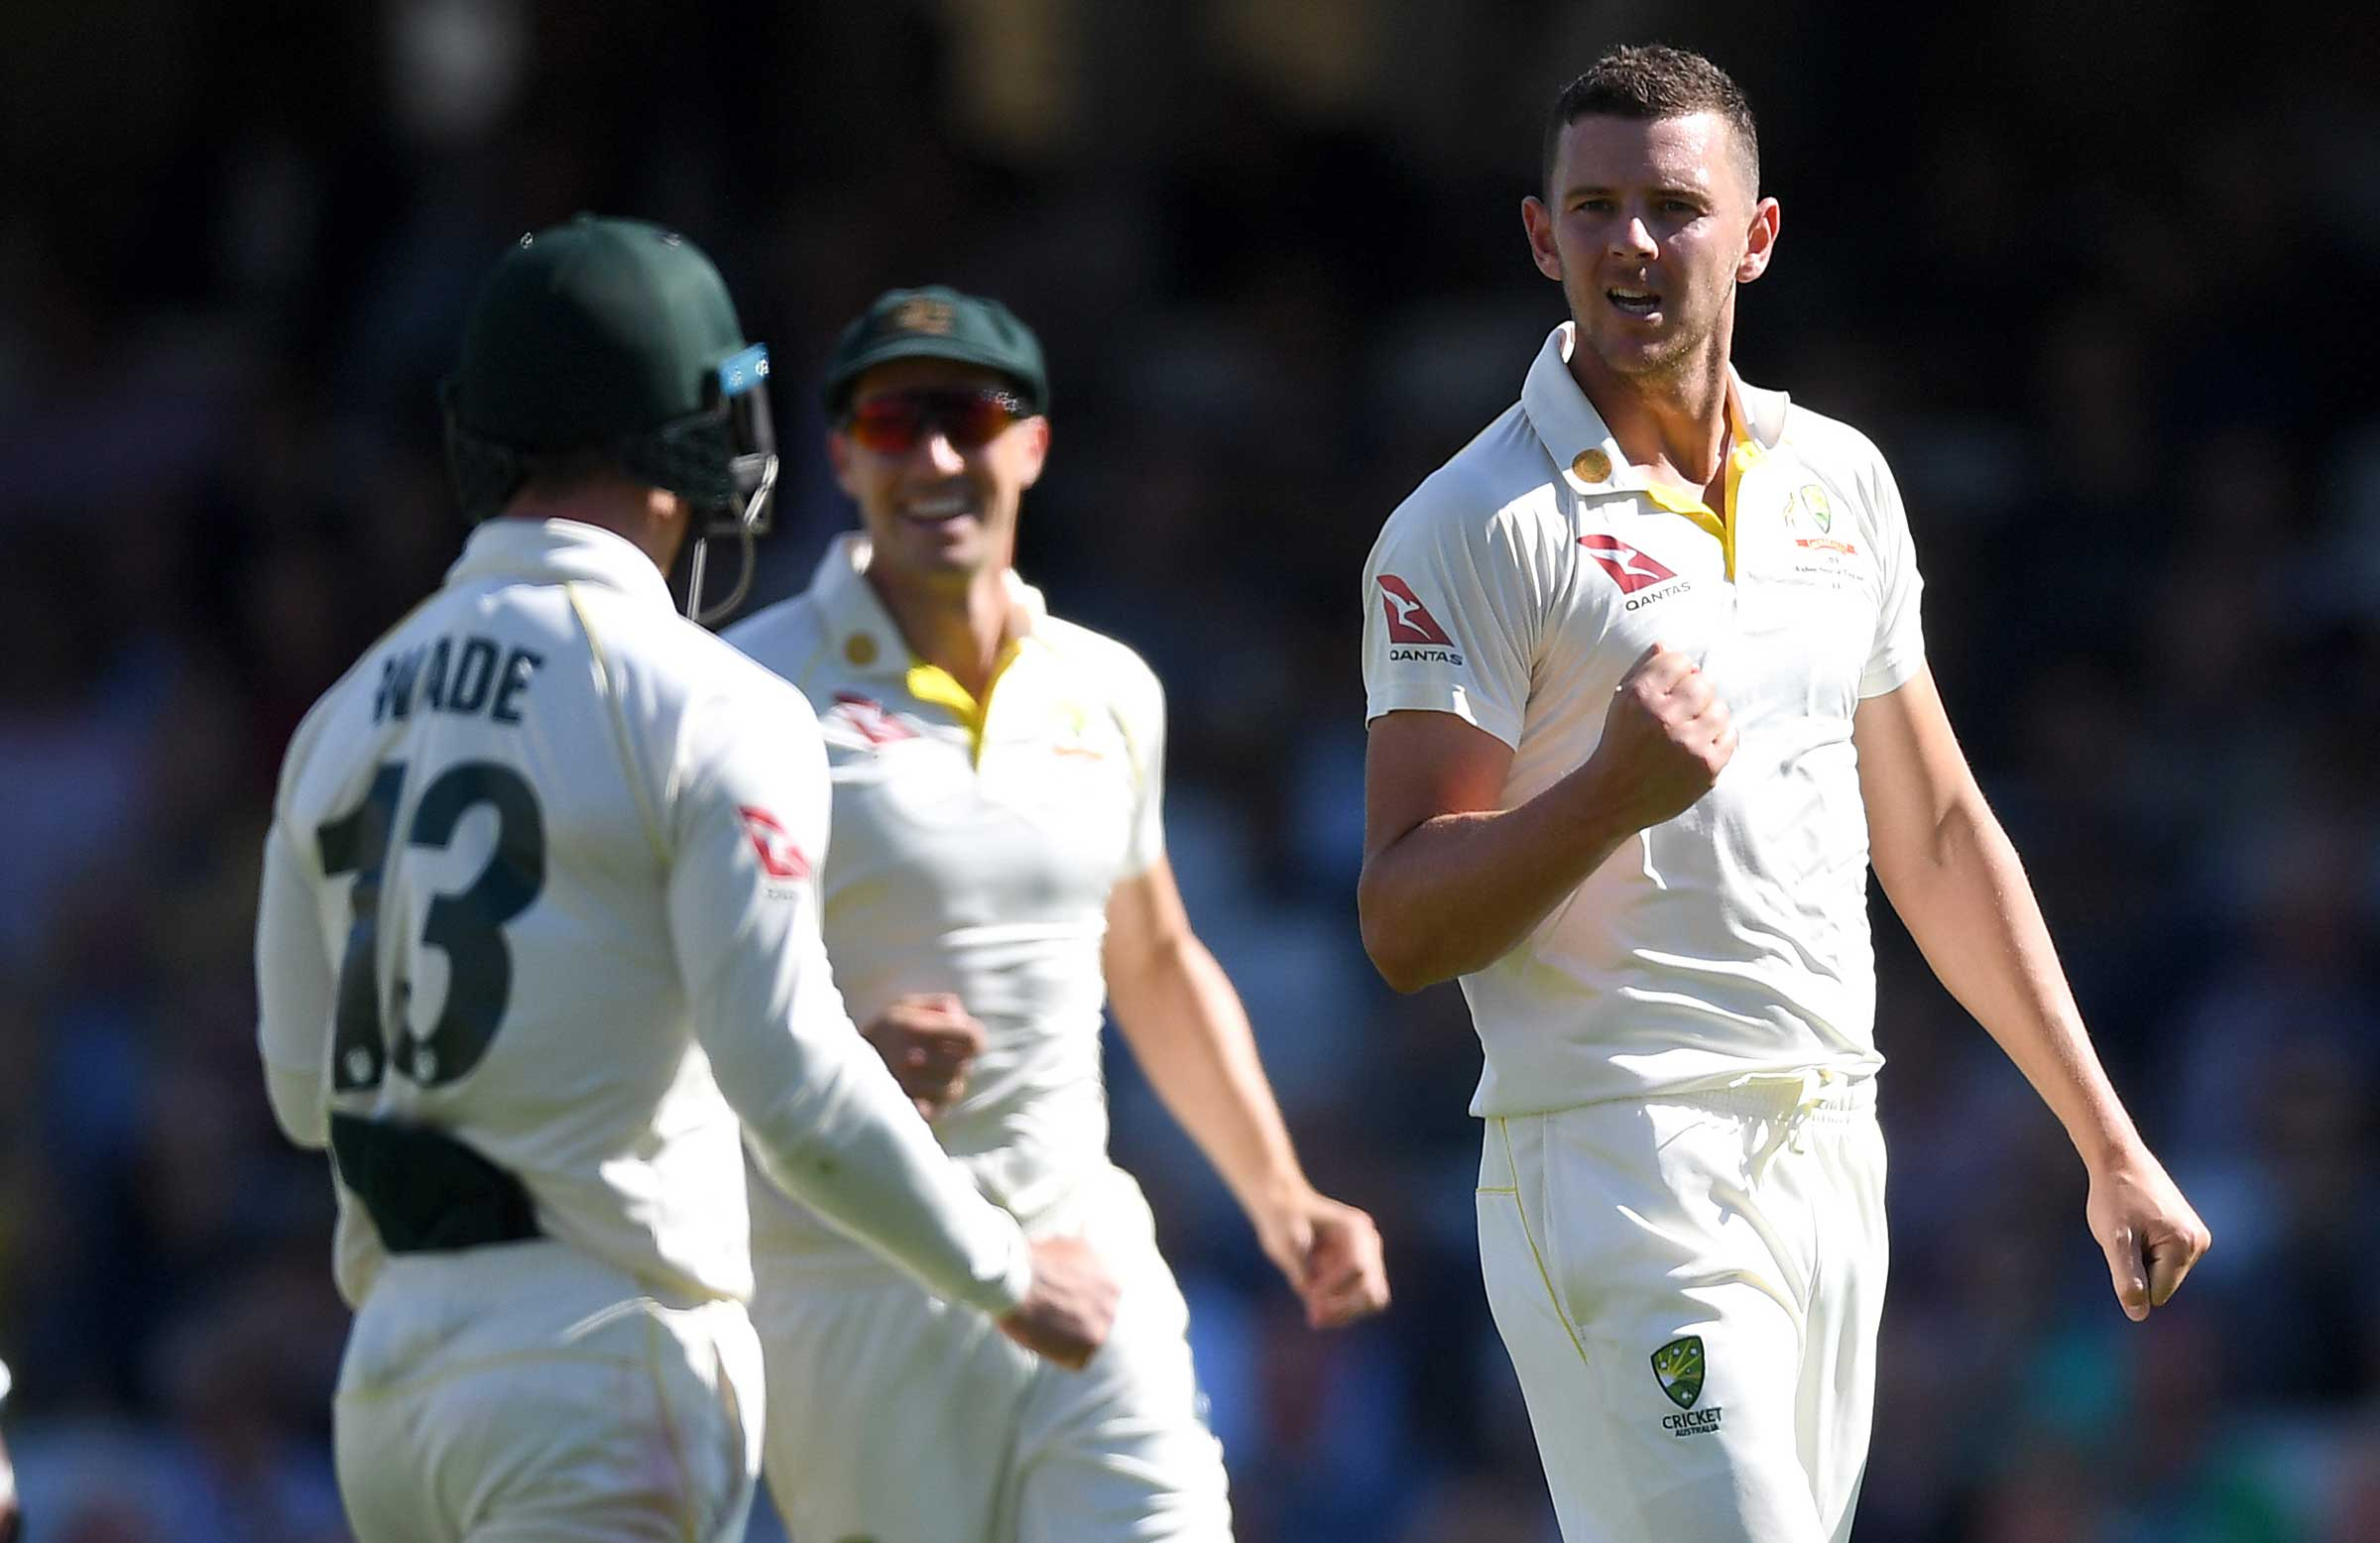 Hazlewood celebrates dismissing Burns // Getty